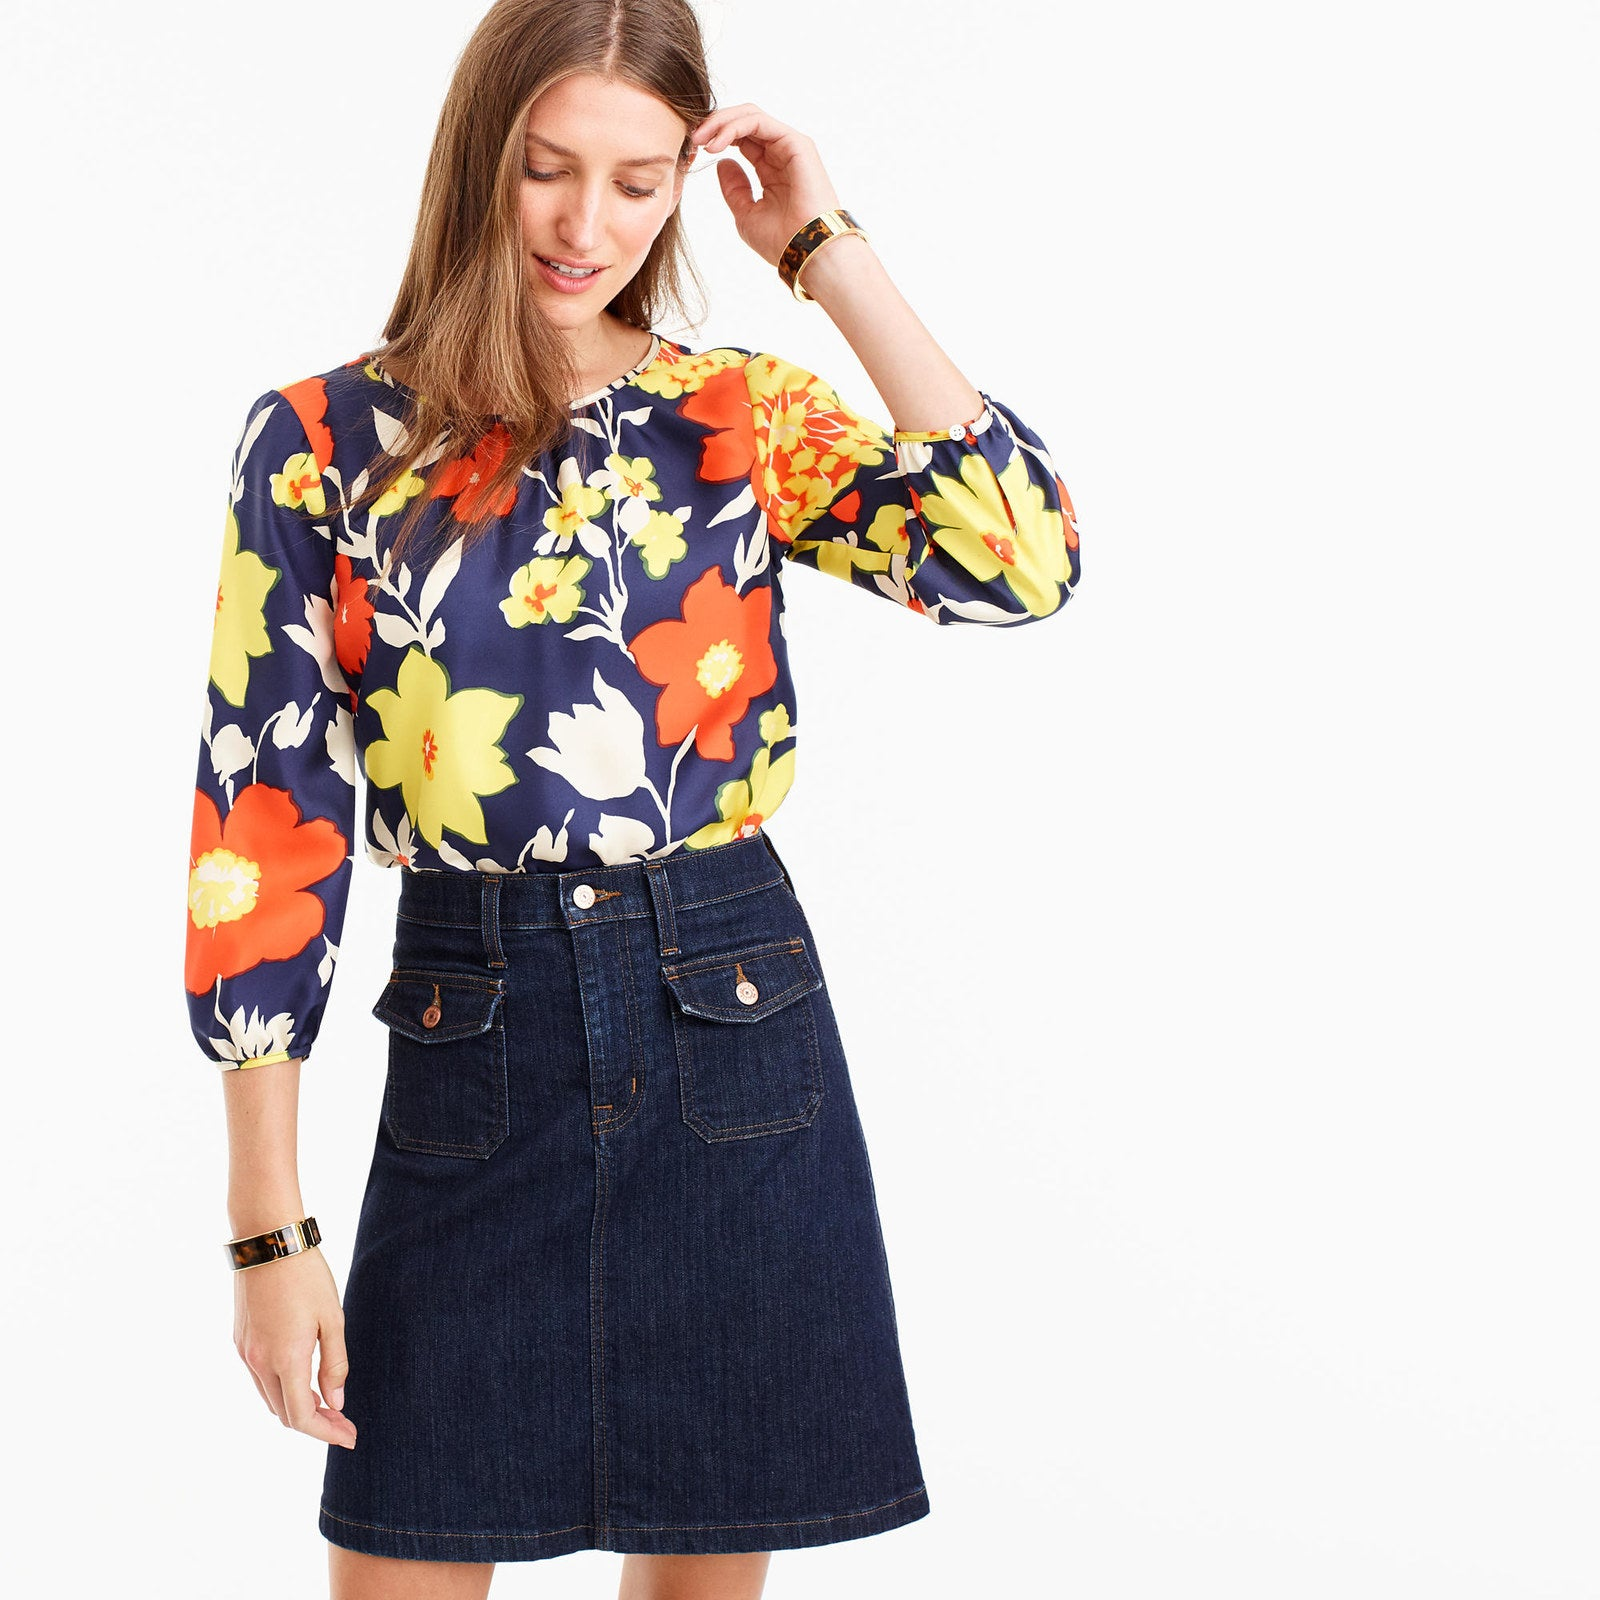 Buzzfeed clothing stores